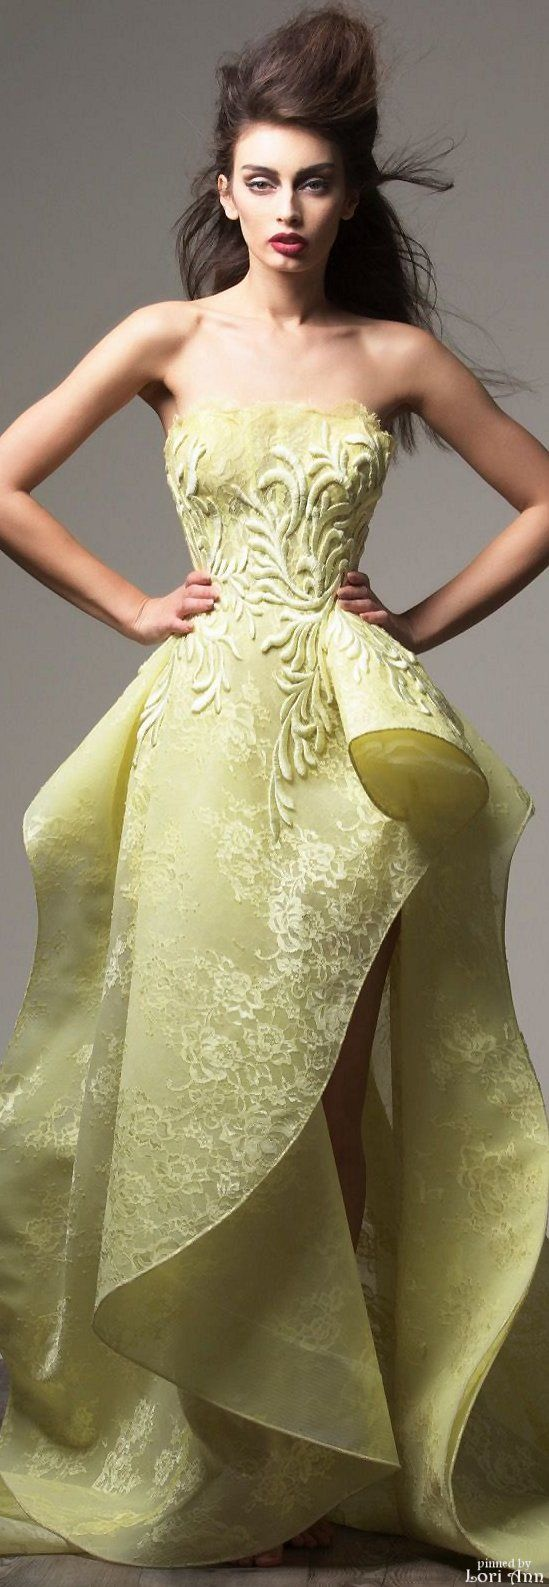 Saiid Kobeisy Couture Fall 2015 women fashion outfit clothing style apparel @roressclothes closet ideas